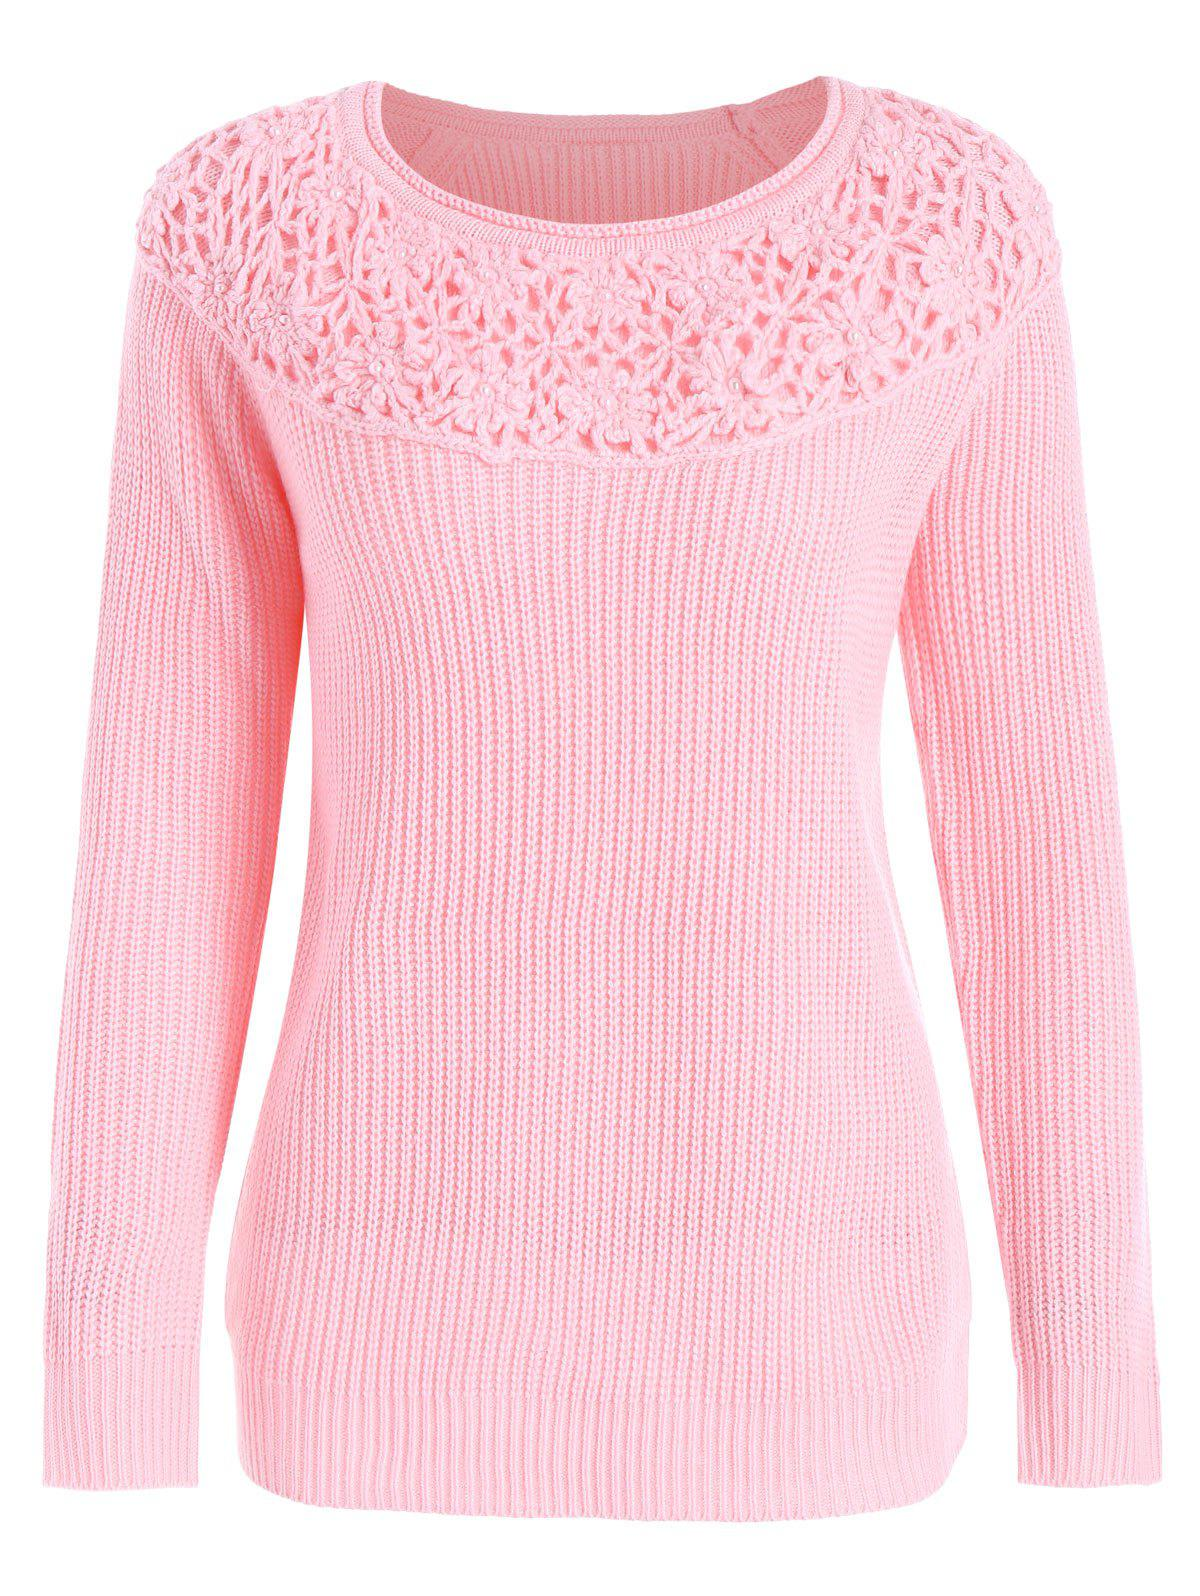 Plus Size Floral Crochet Design Beaded SweaterWOMEN<br><br>Size: 2XL; Color: PINK; Type: Pullovers; Material: Polyester; Sleeve Length: Full; Collar: Crew Neck; Technics: Flat Knitted; Style: Fashion; Season: Fall,Winter; Pattern Type: Solid; Weight: 0.4500kg; Package Contents: 1 x Sweater;